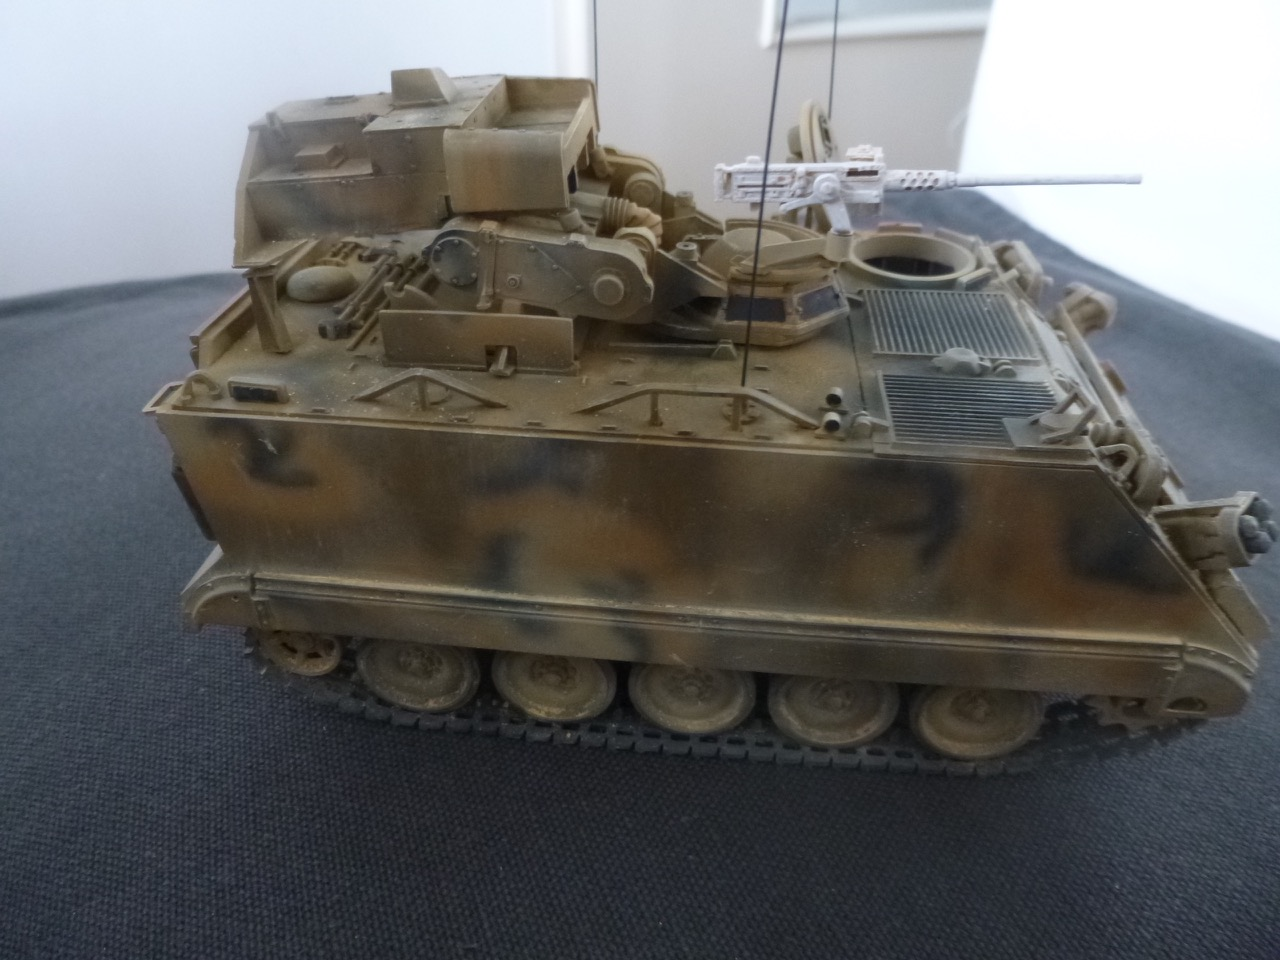 M113 / M109 Tow, une conversion en résine Verlinden au 1/35, base Tamiya 170123124111229862